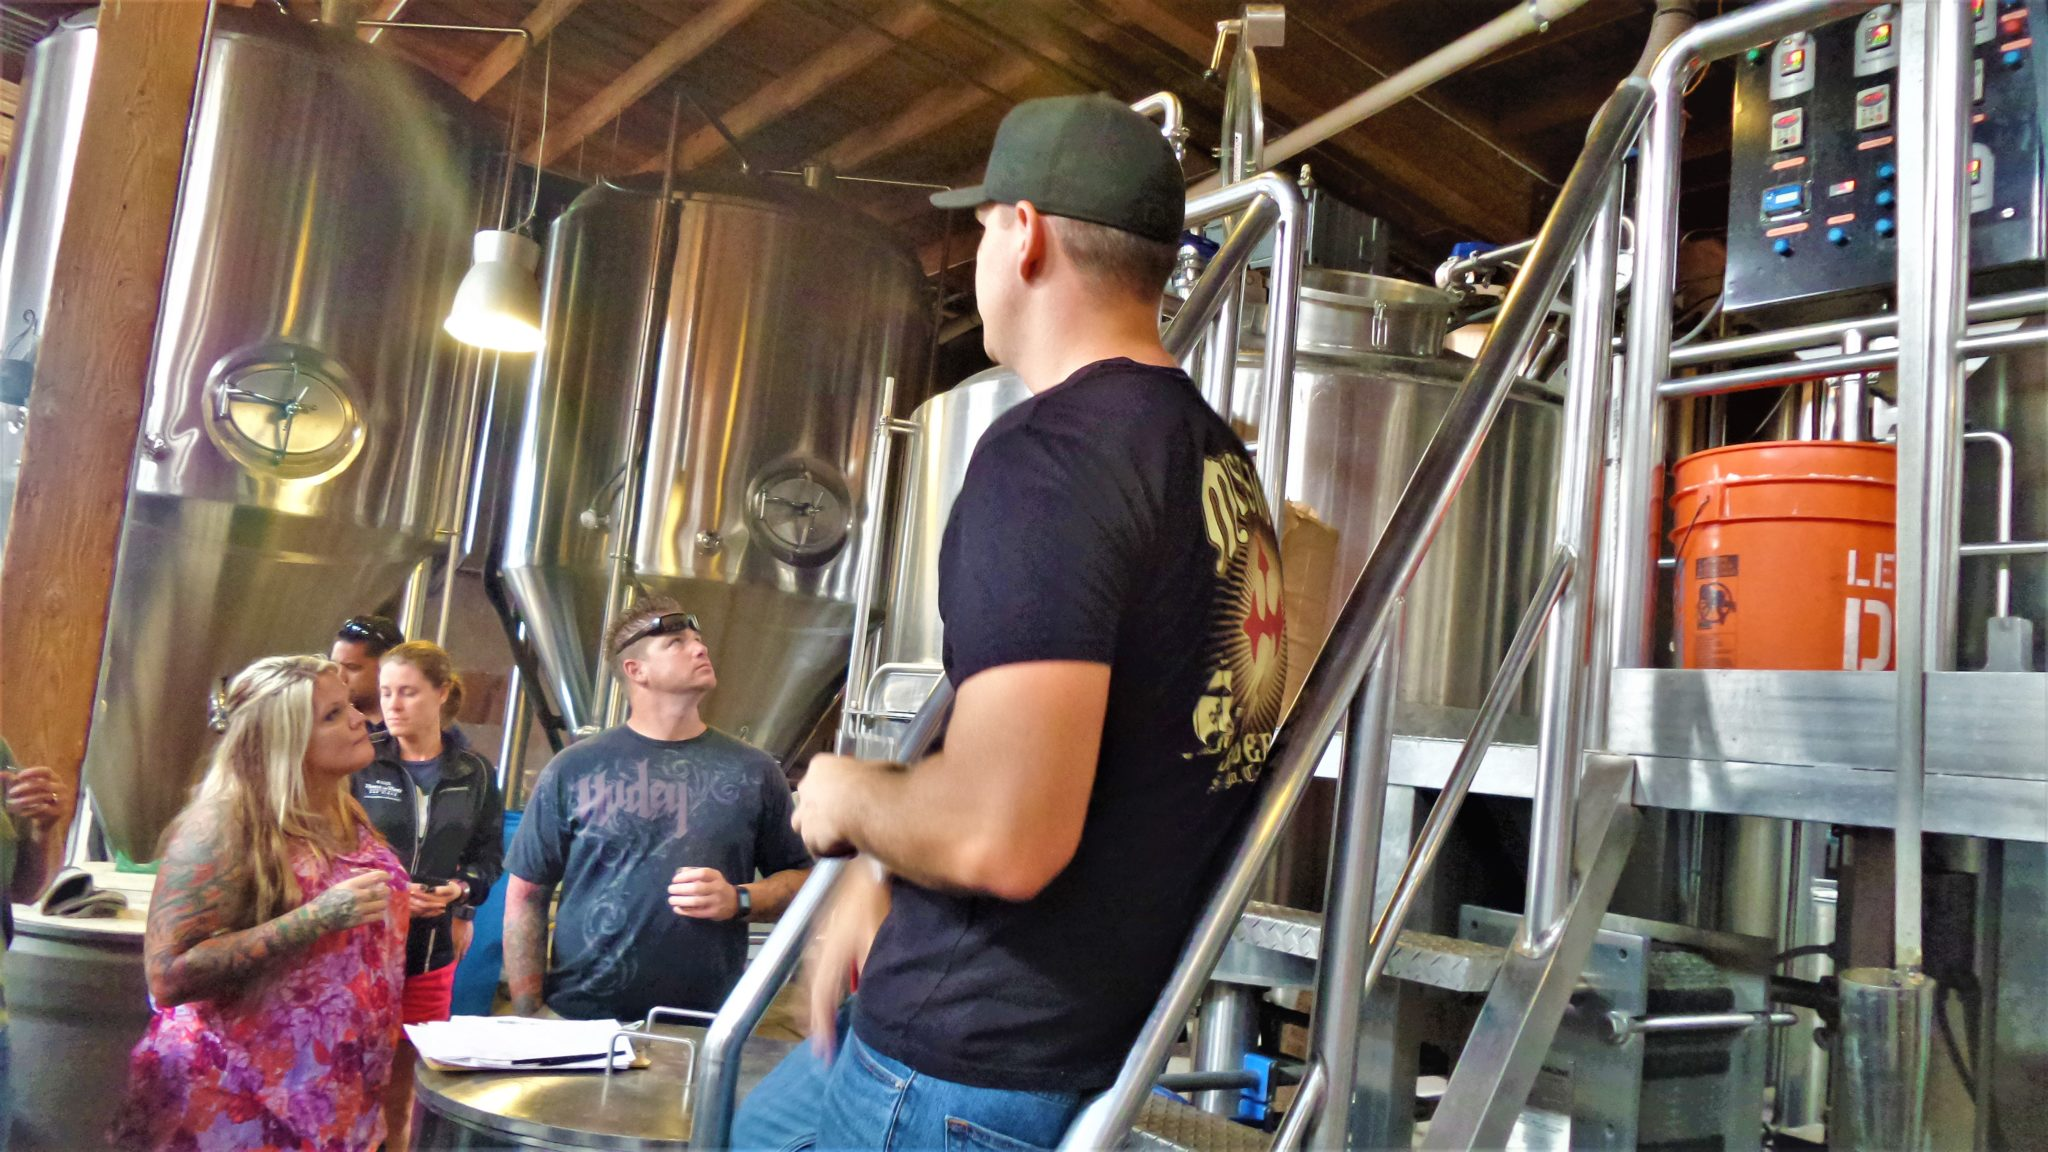 Mission Brewry visitor tour, things to do in San Diego, California